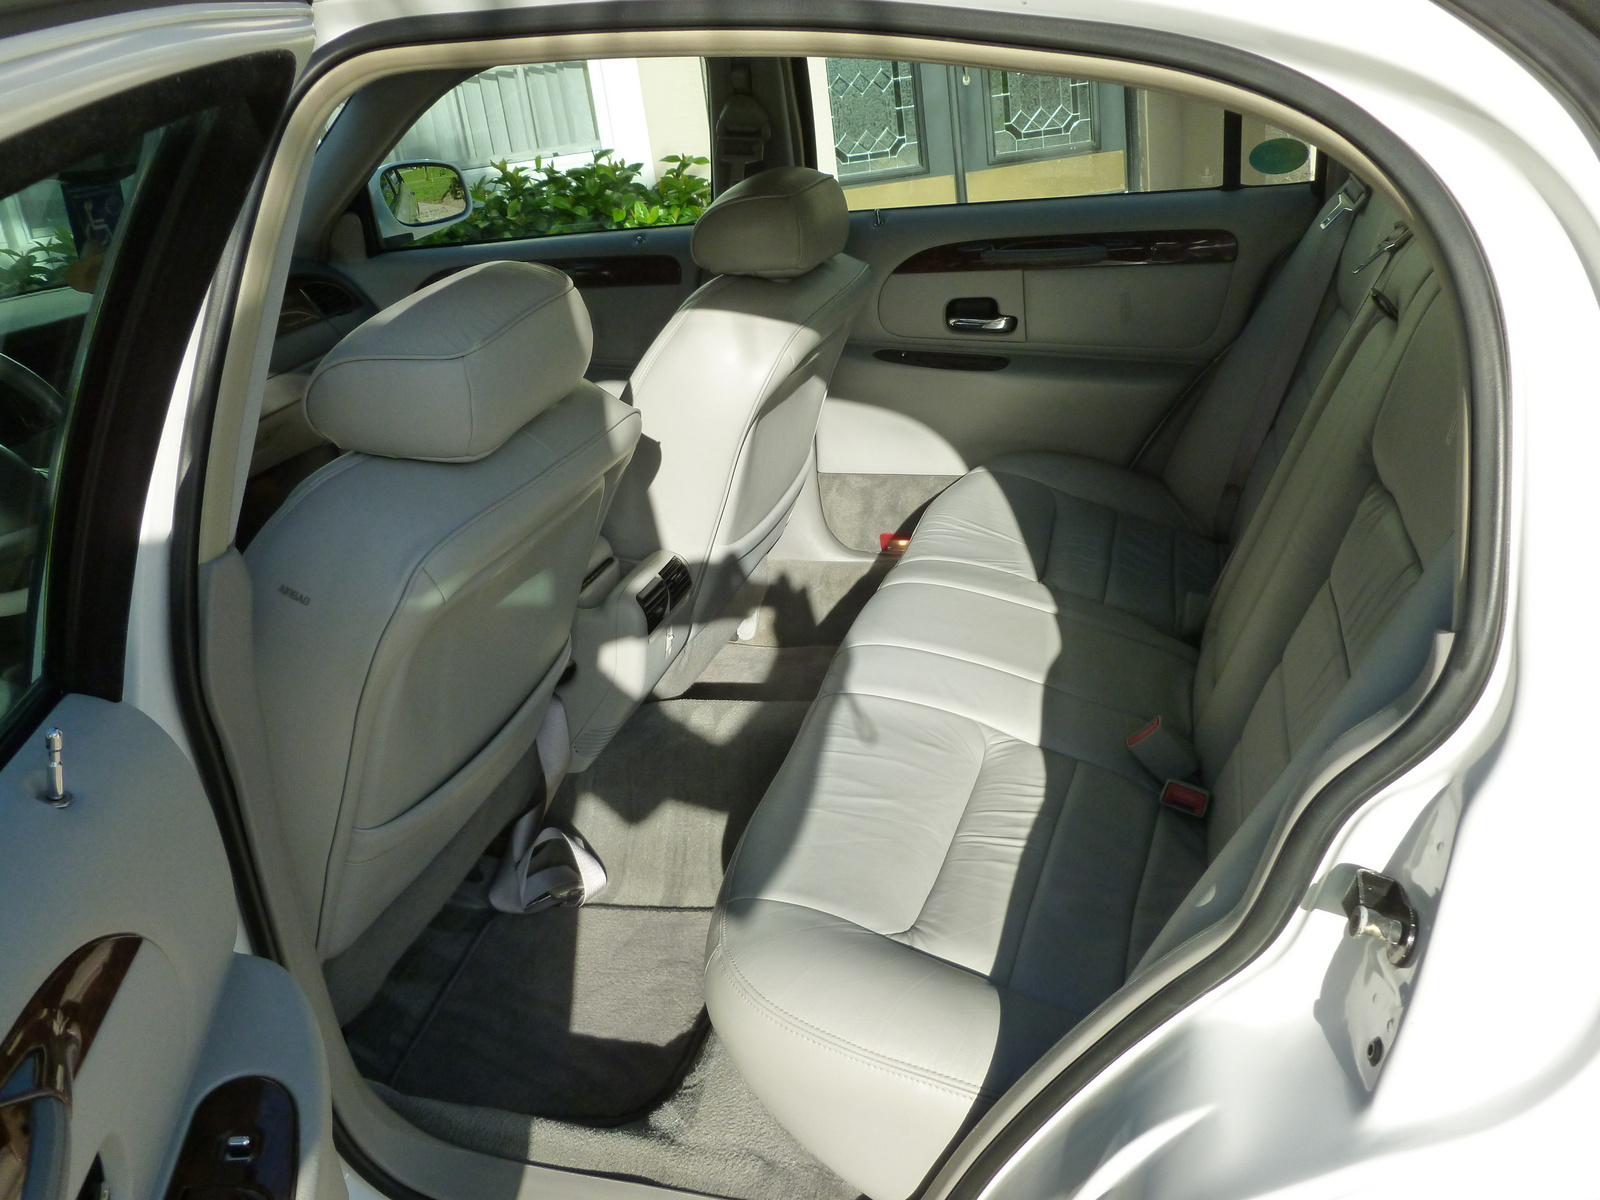 2001 lincoln town car interior pictures cargurus. Black Bedroom Furniture Sets. Home Design Ideas